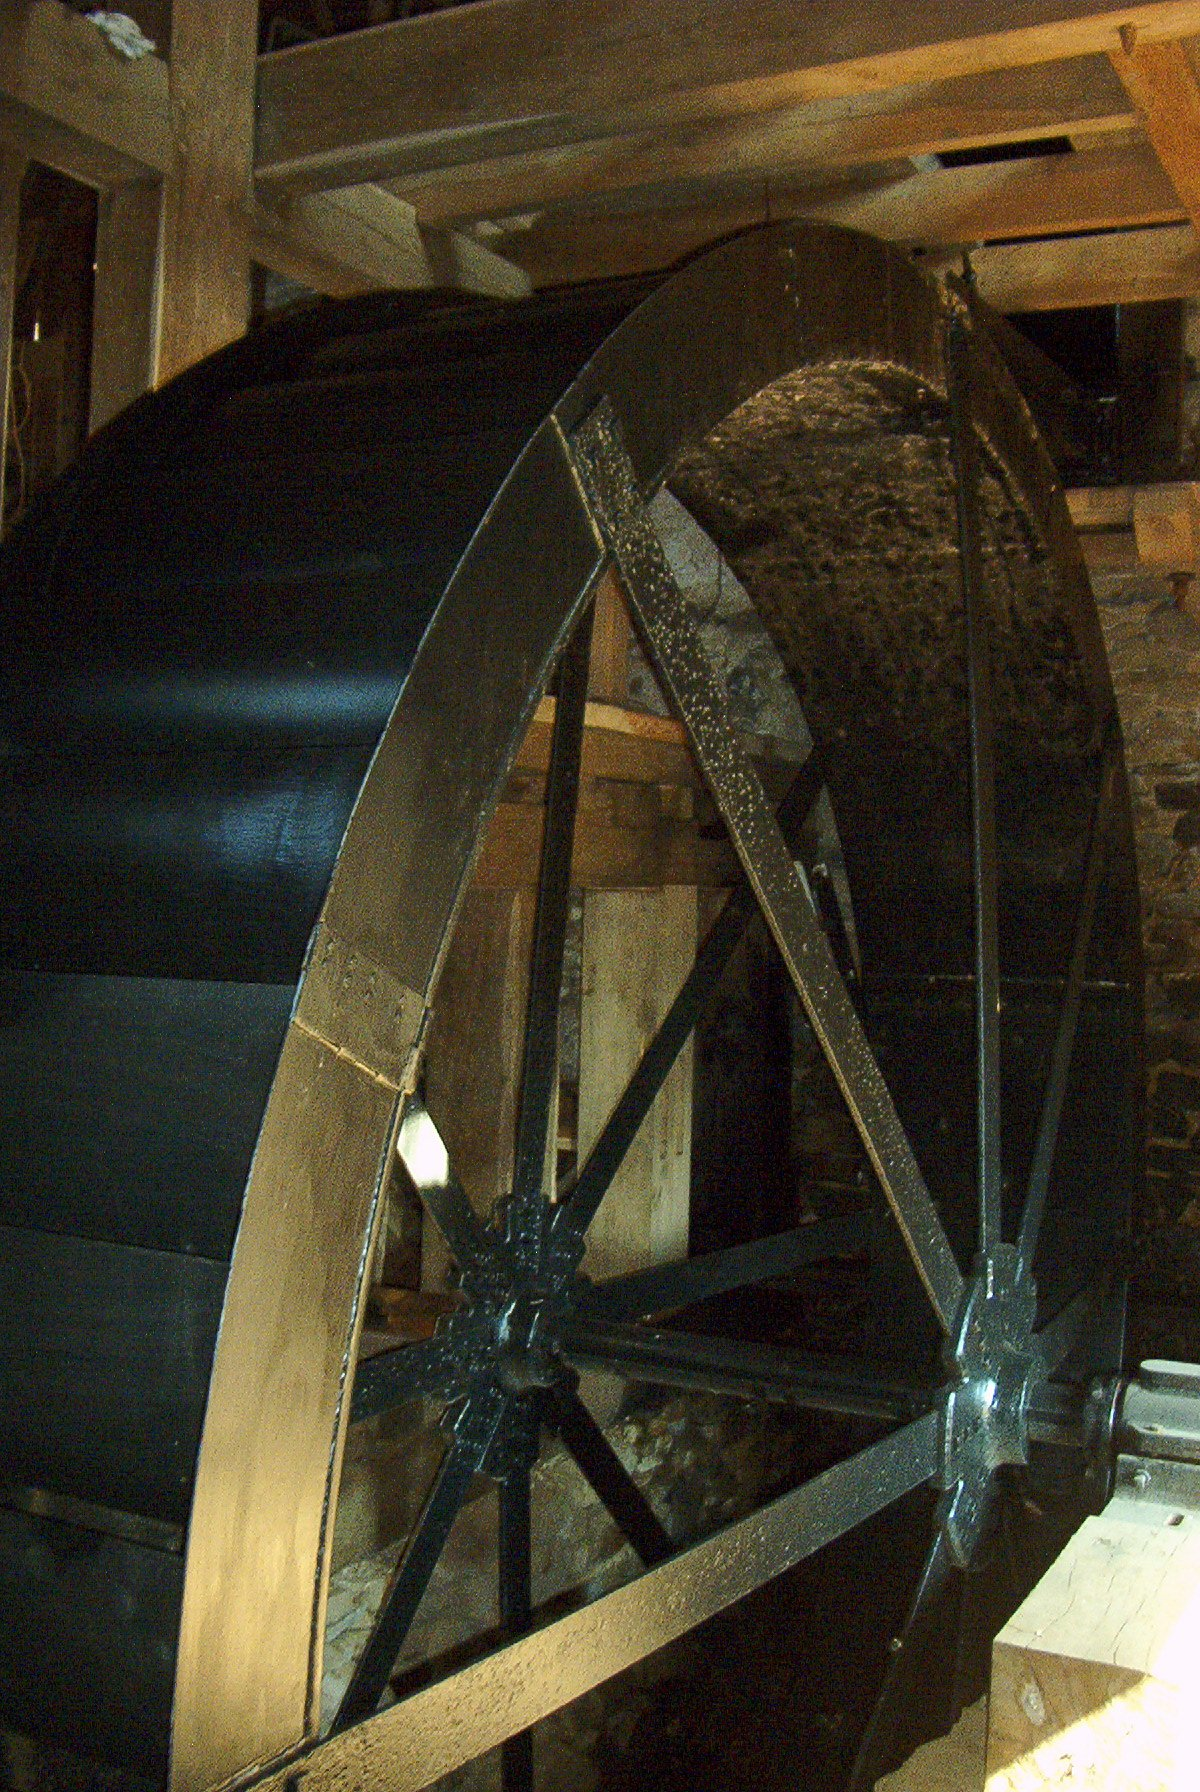 And the water wheel that drives those wooden inner-workings.